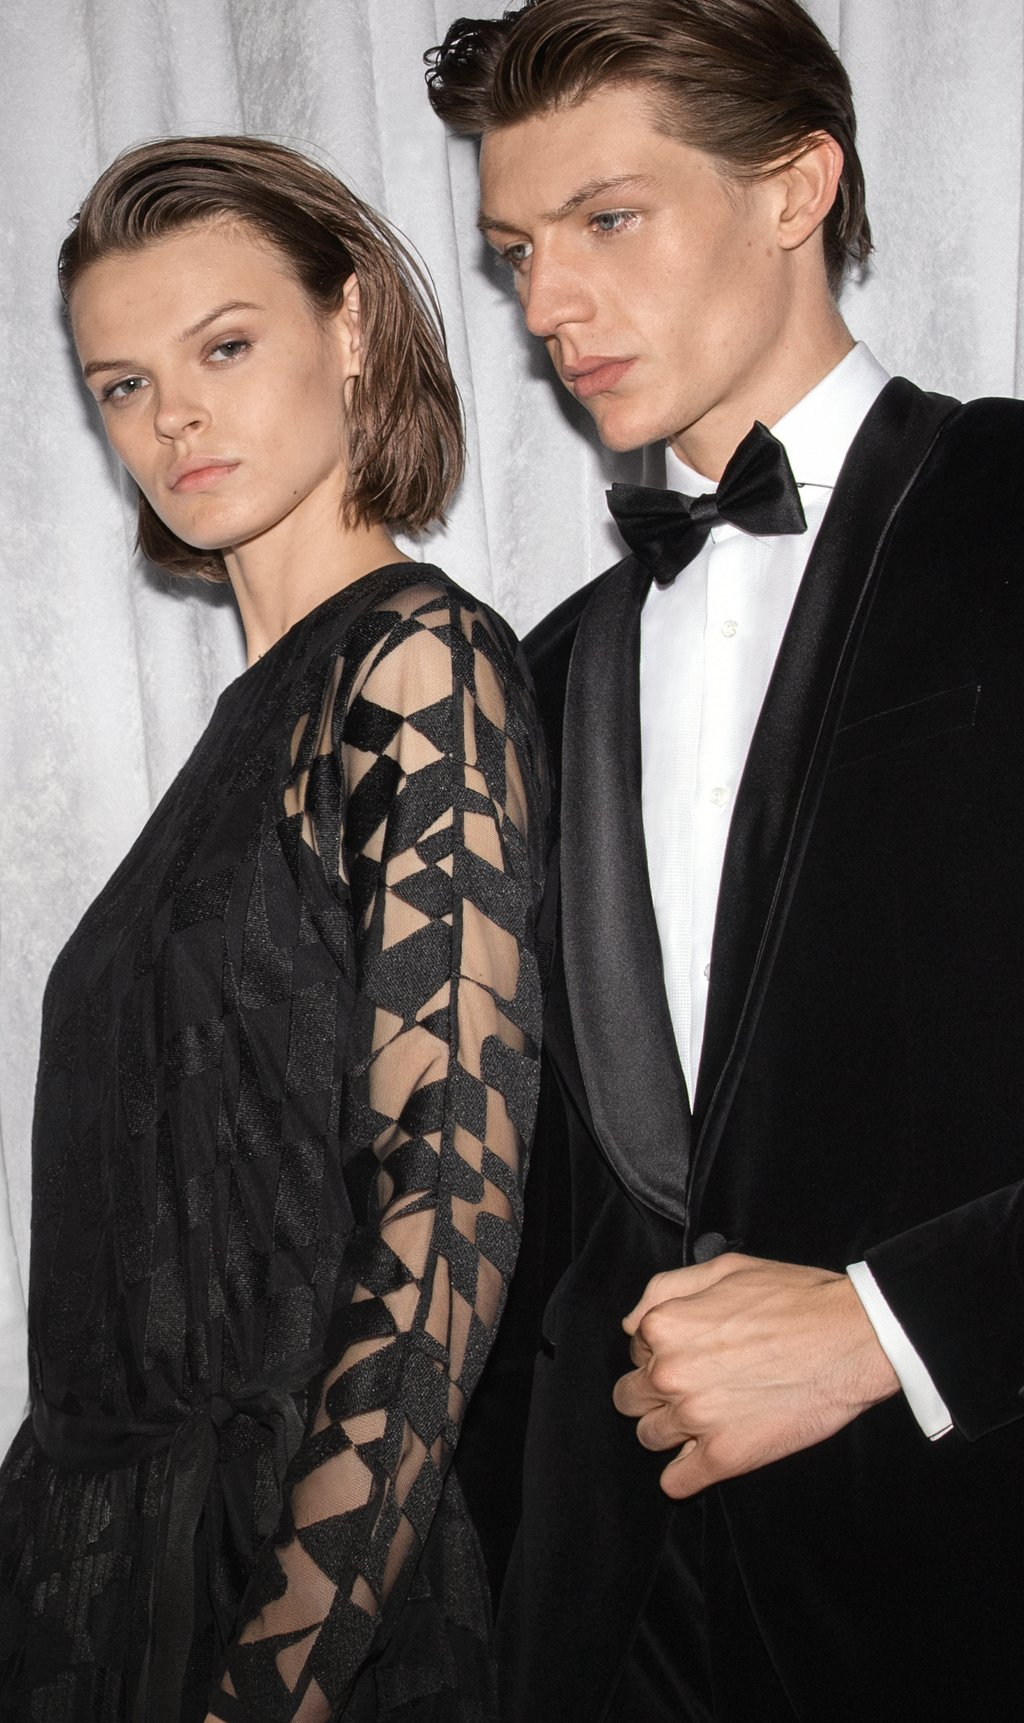 0a5c23350 ... Male and female models wearing evening looks from BOSS